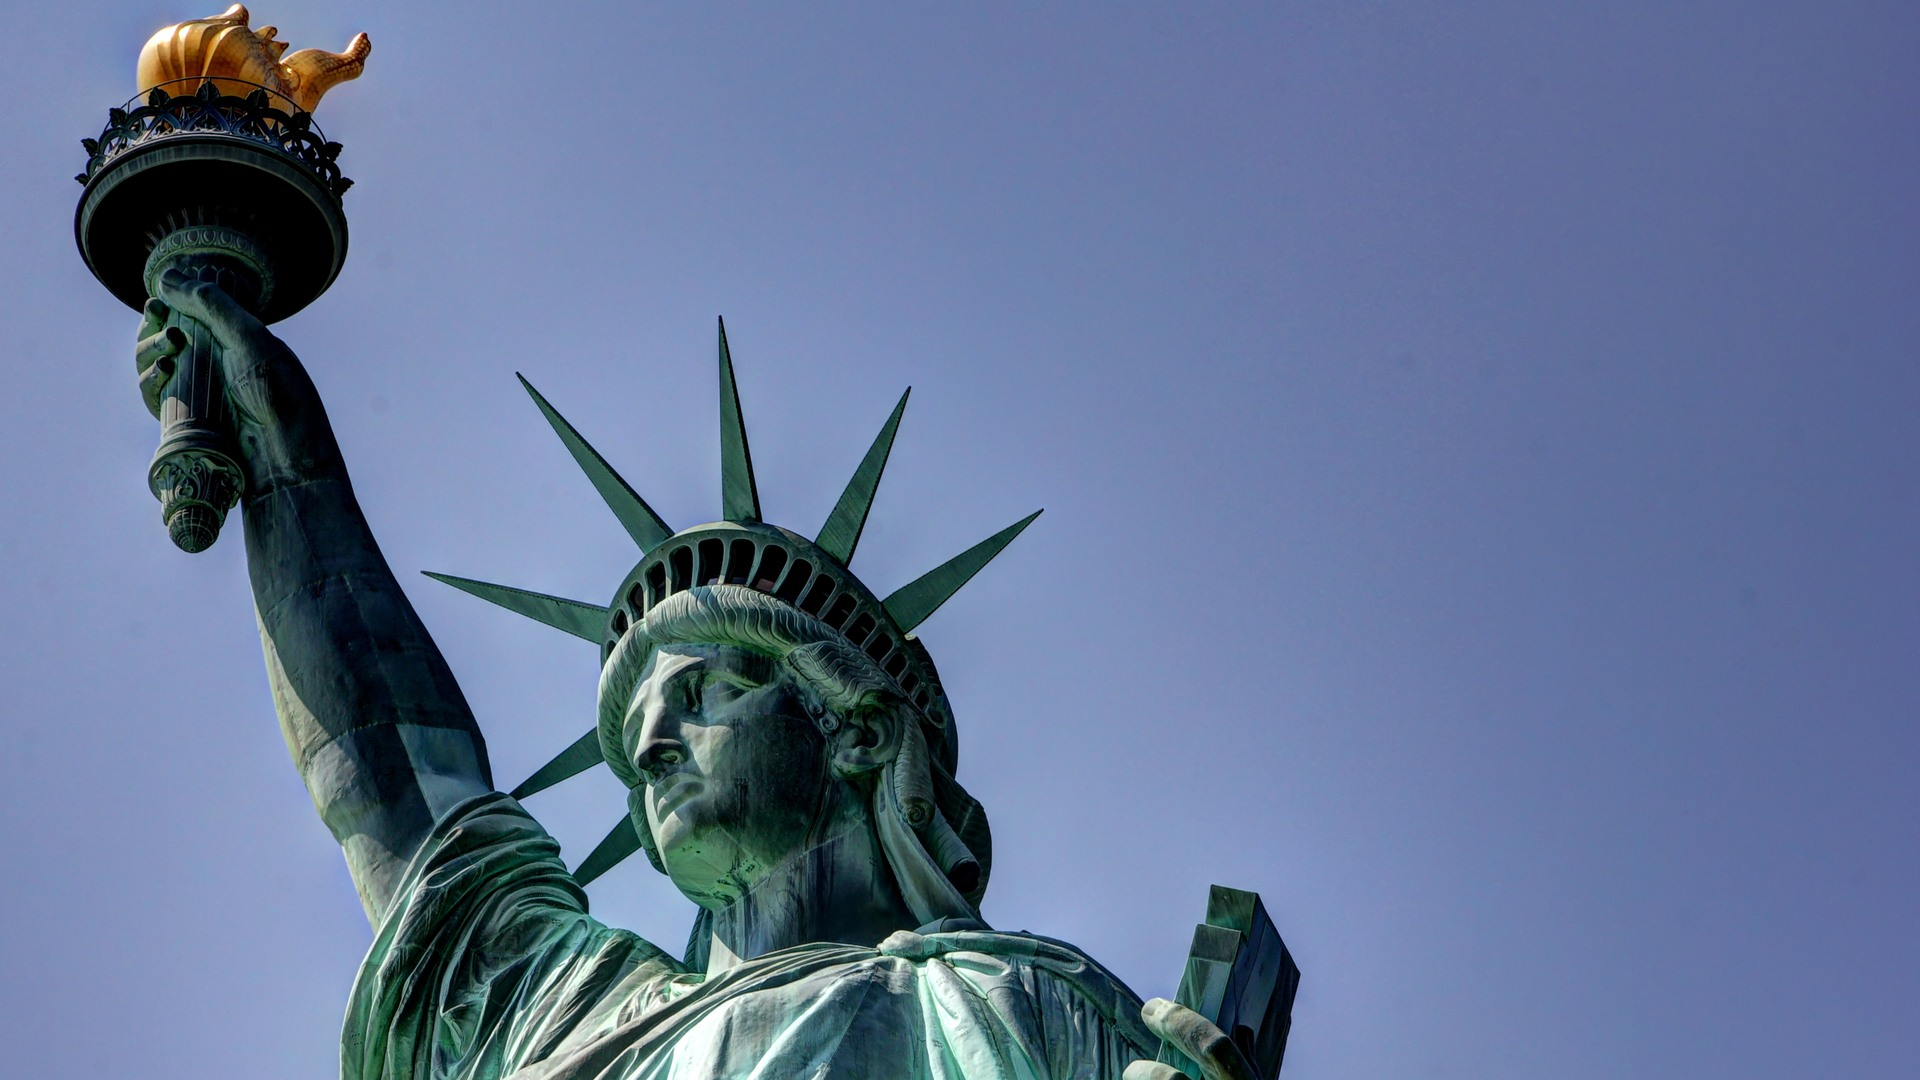 Free Download 12 Stunning Hd Statue Of Liberty Wallpapers